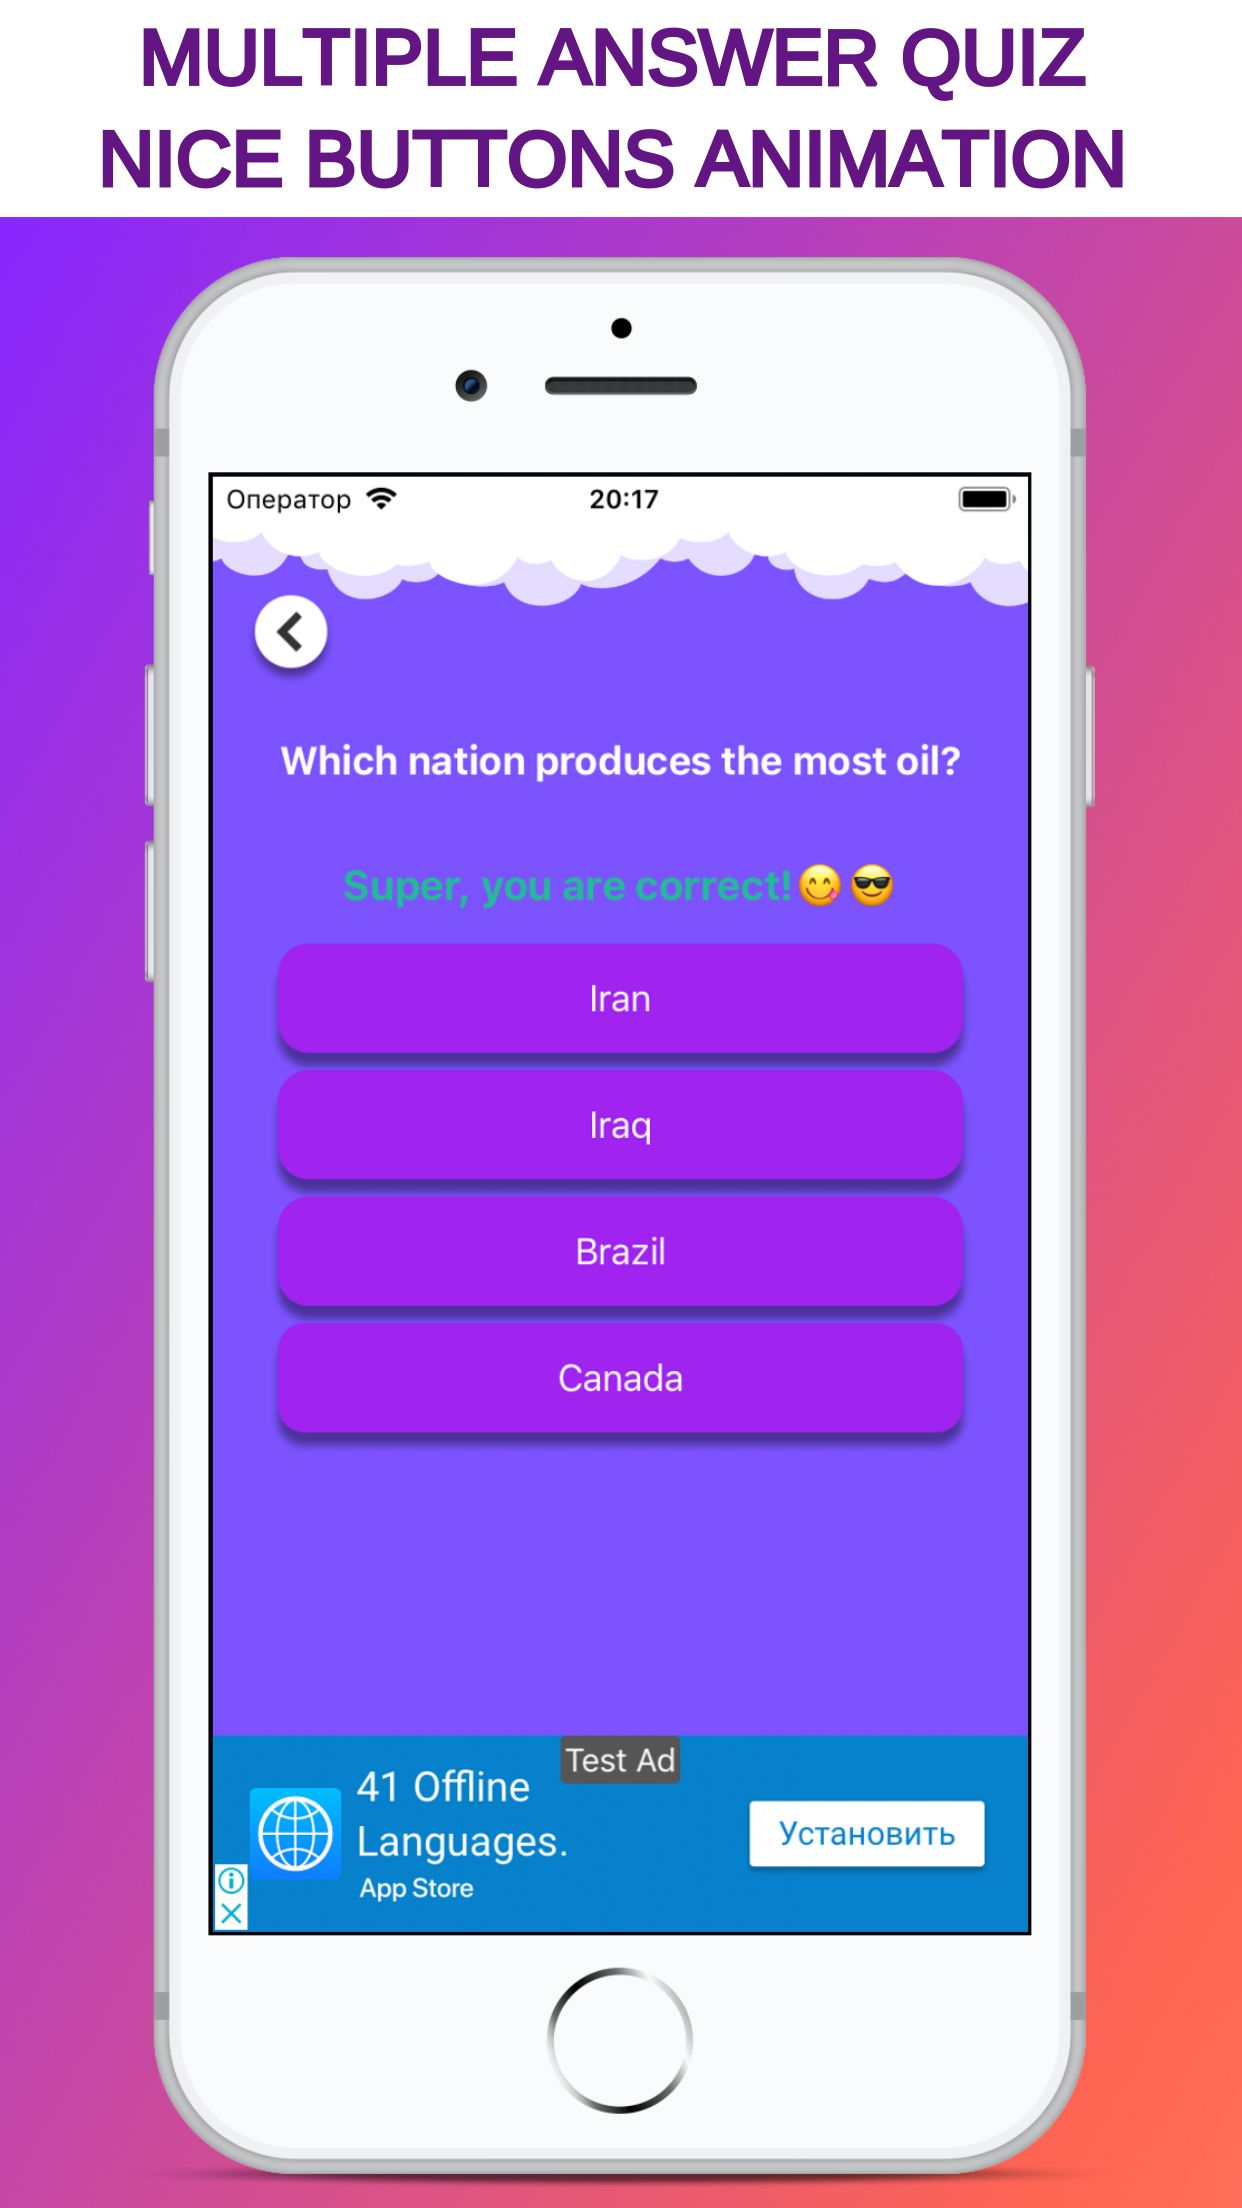 MyQuizz - iOS Multiple Answer Quiz Game Screenshot 6